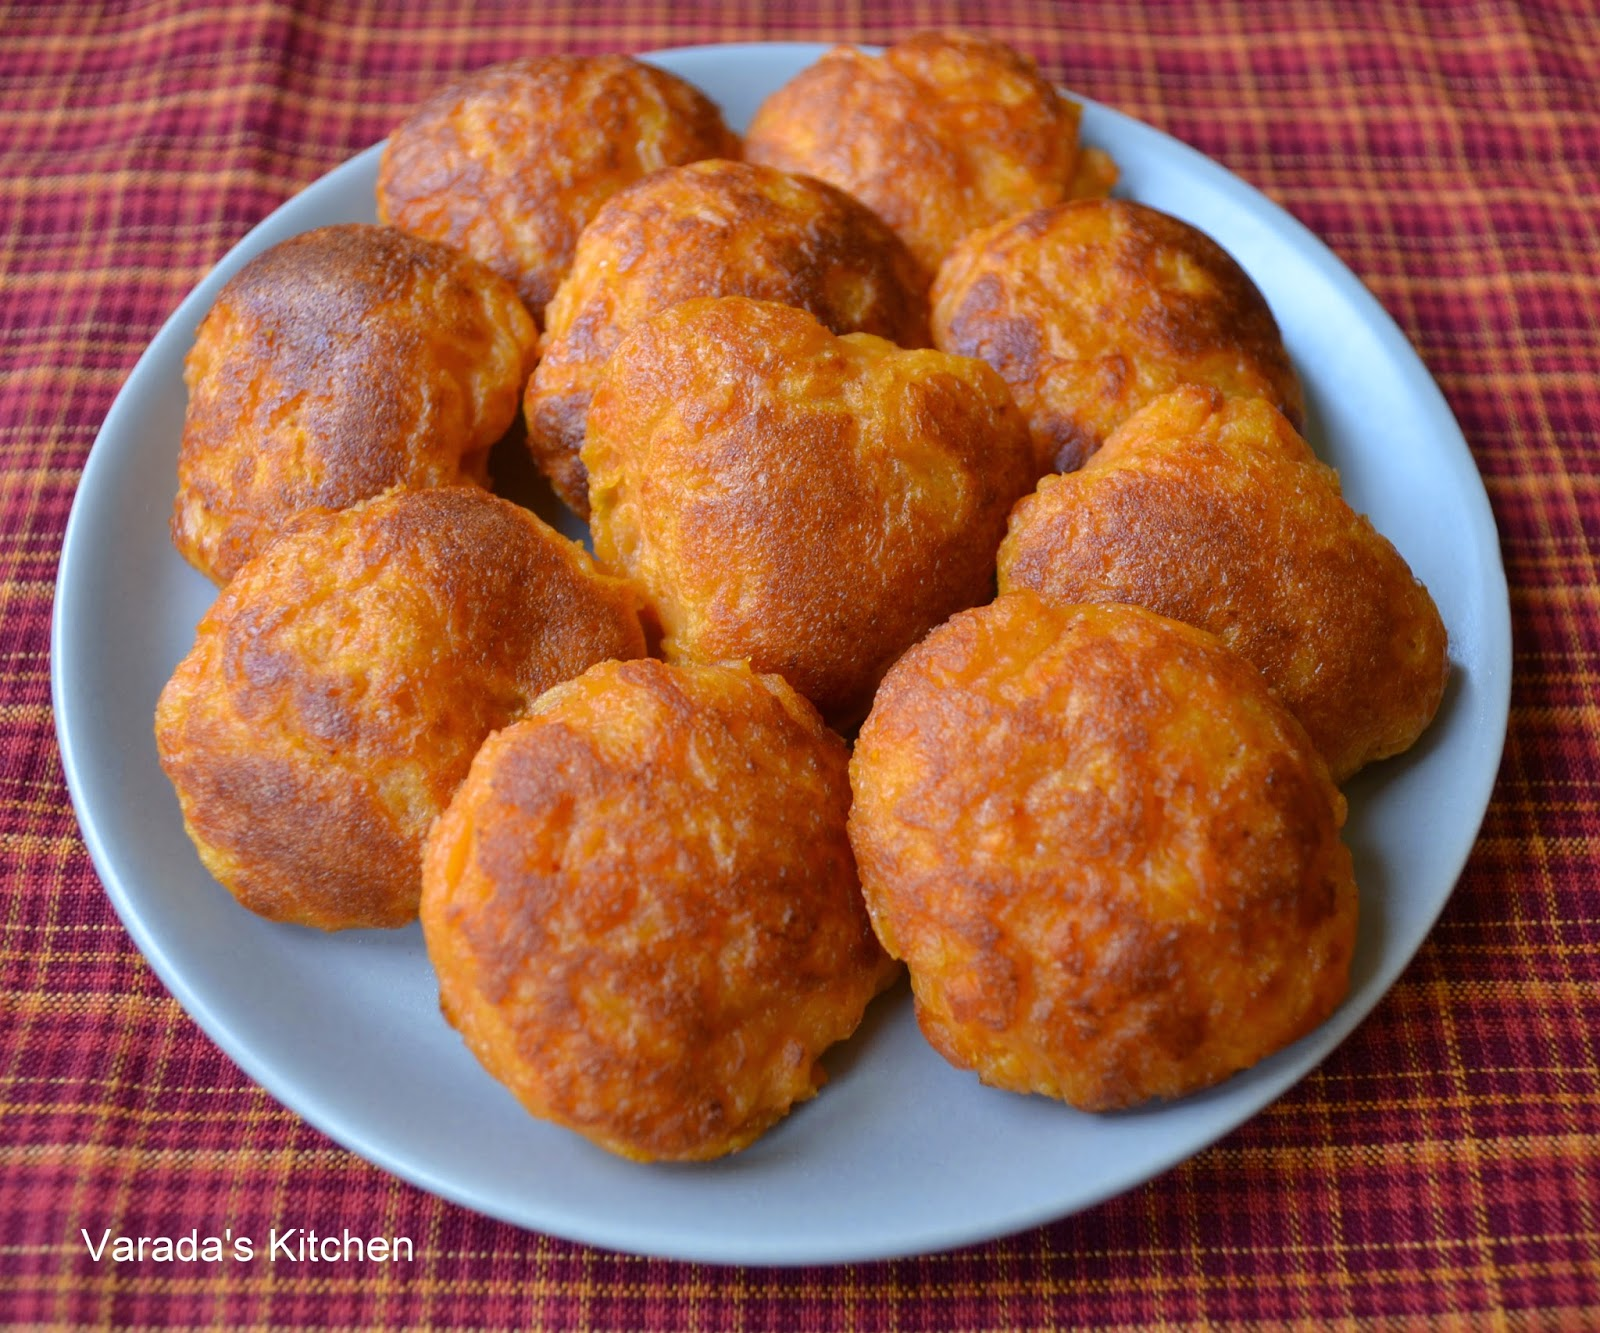 Varadas kitchen golabjamoun zambian sweet potato dessert i found these when i made a zambian meal they are made with sweet potato boiled in milk with sugar formed into a dough and then deep fried forumfinder Image collections